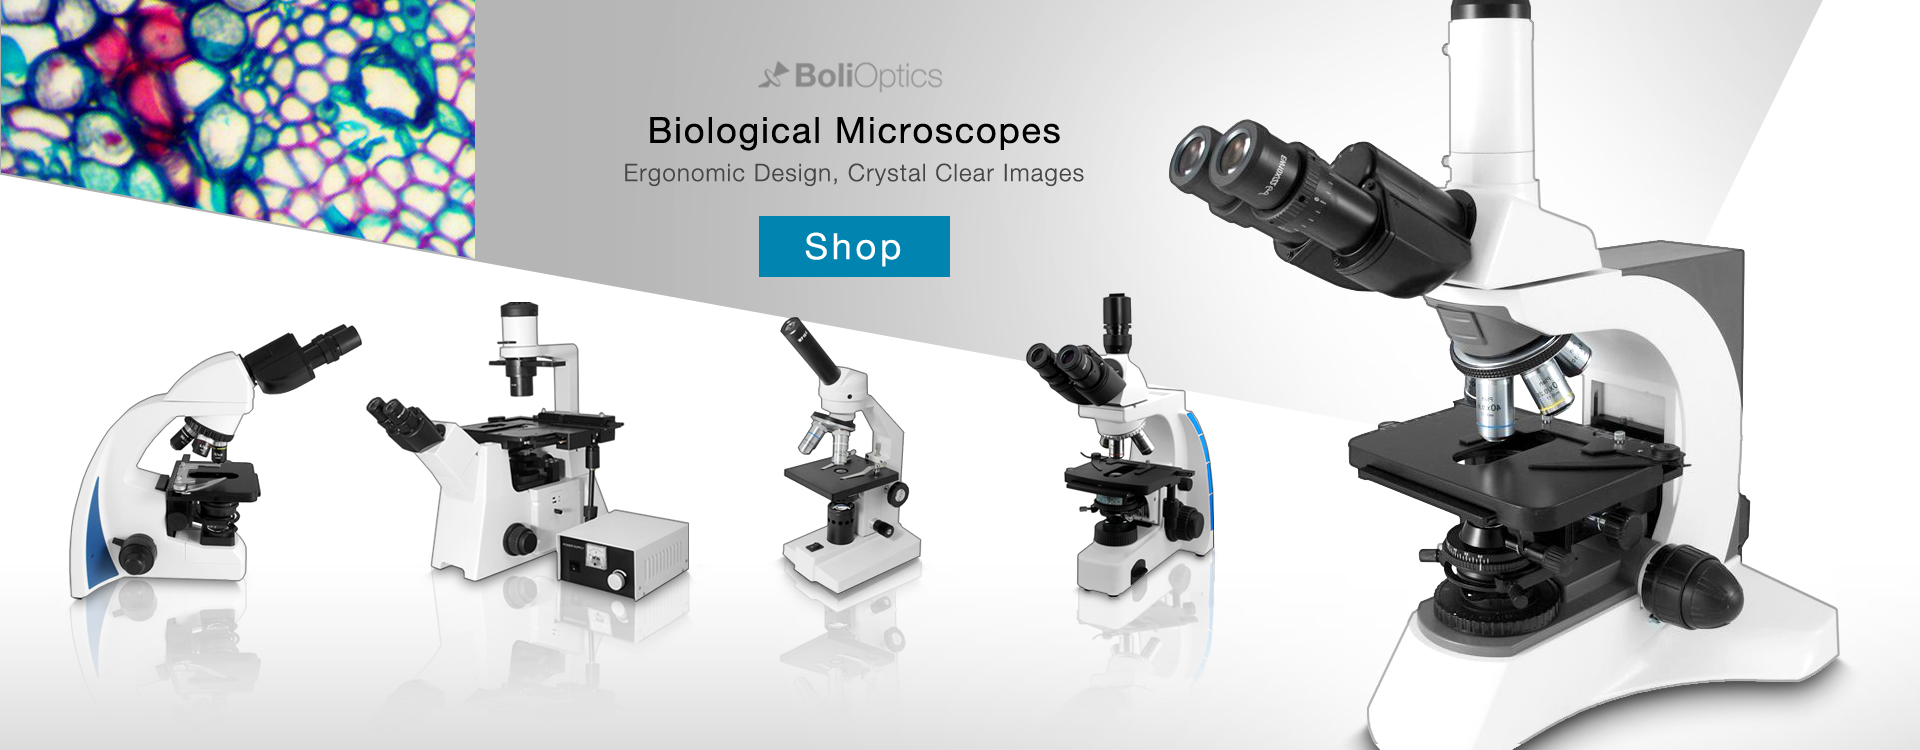 #1 Online Microscope and Accessory Store -